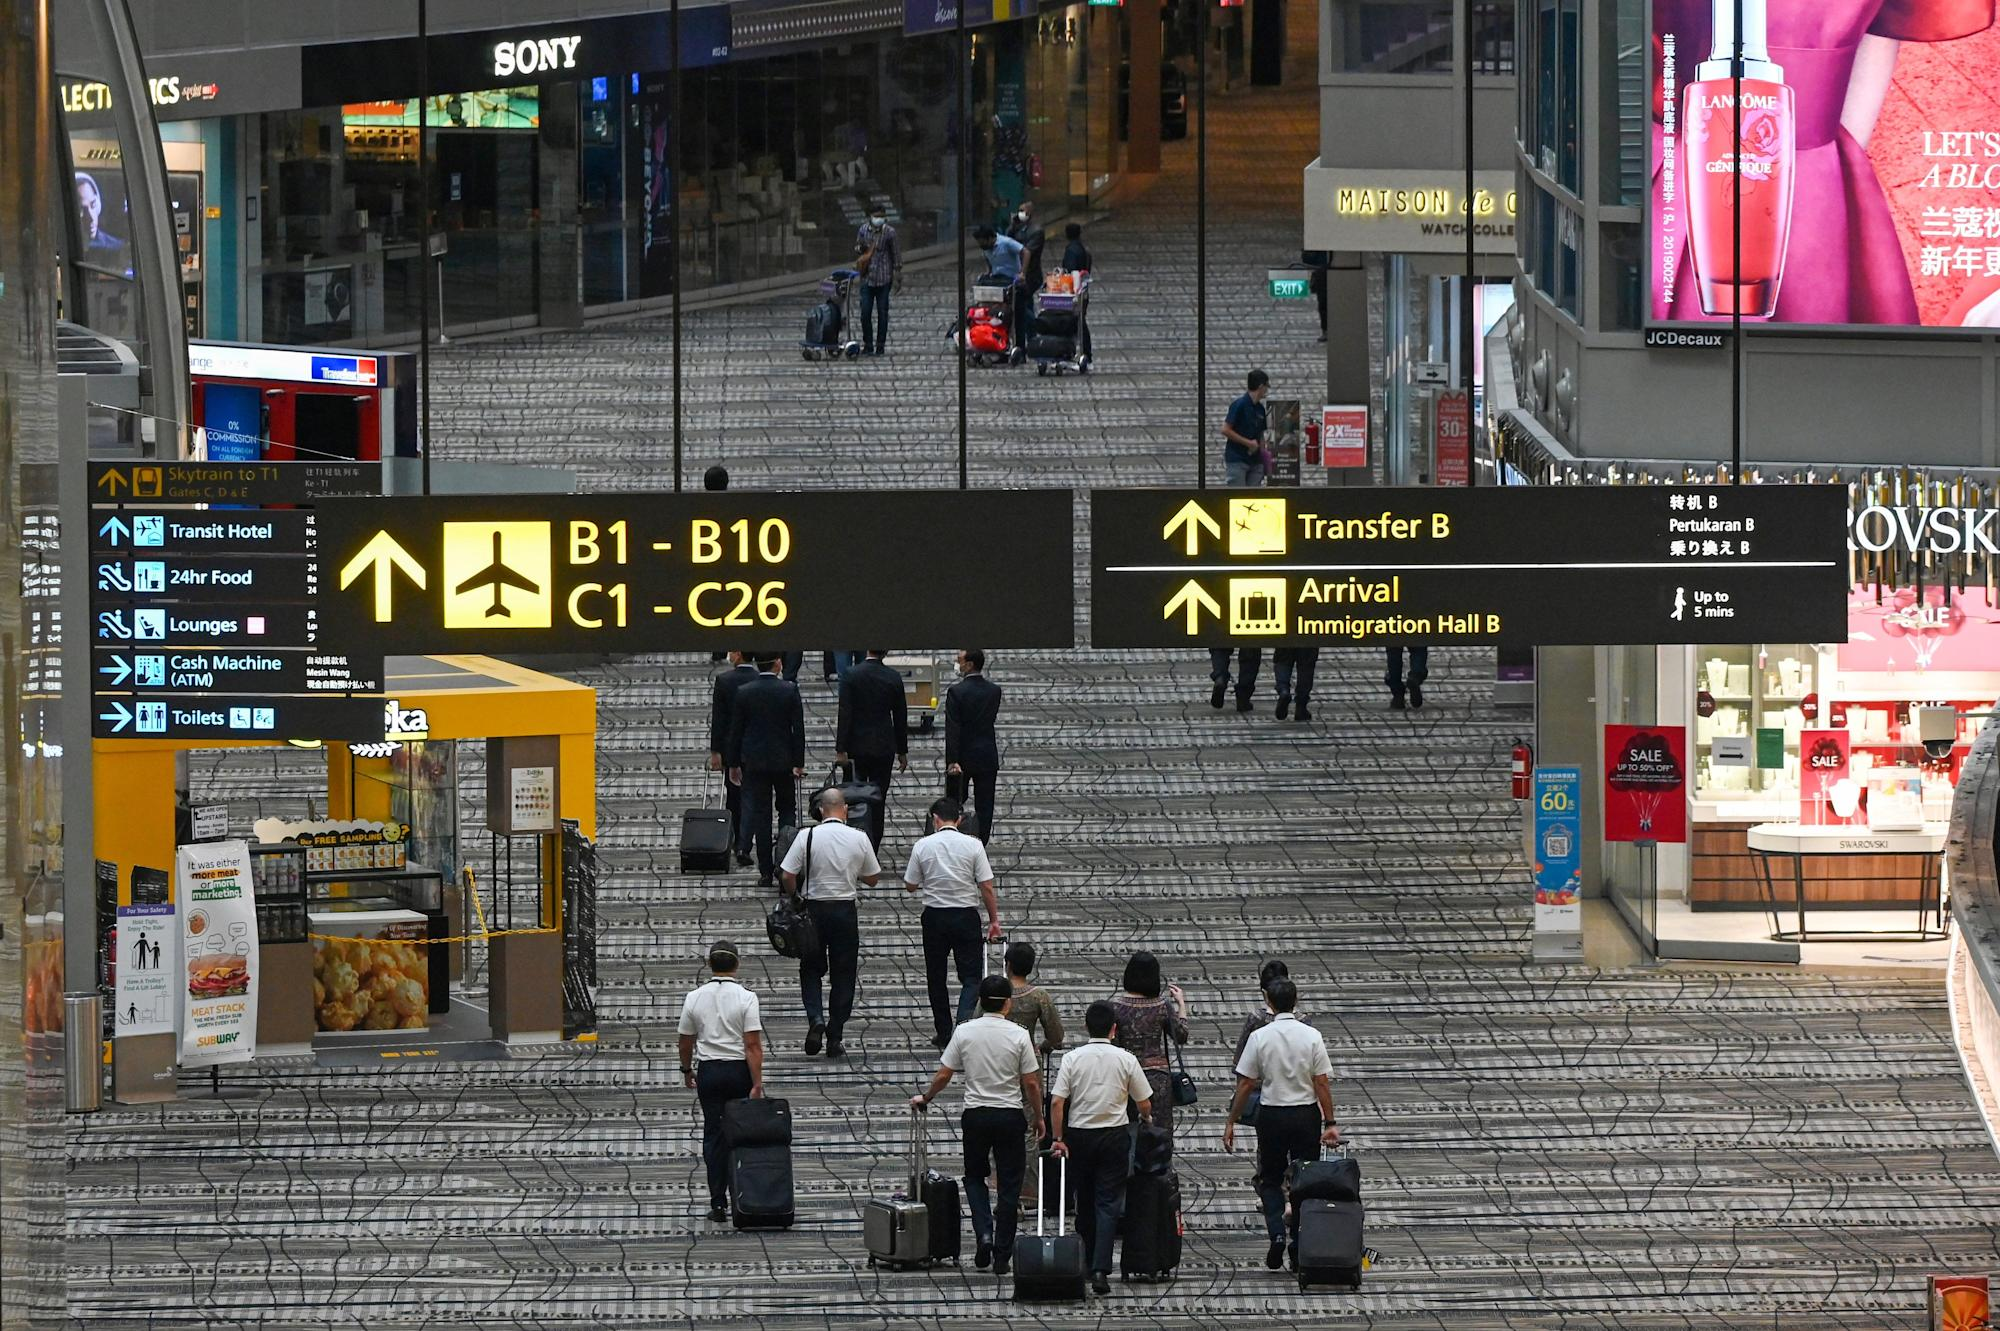 Singapore to ban travel from India from Friday due to COVID-19